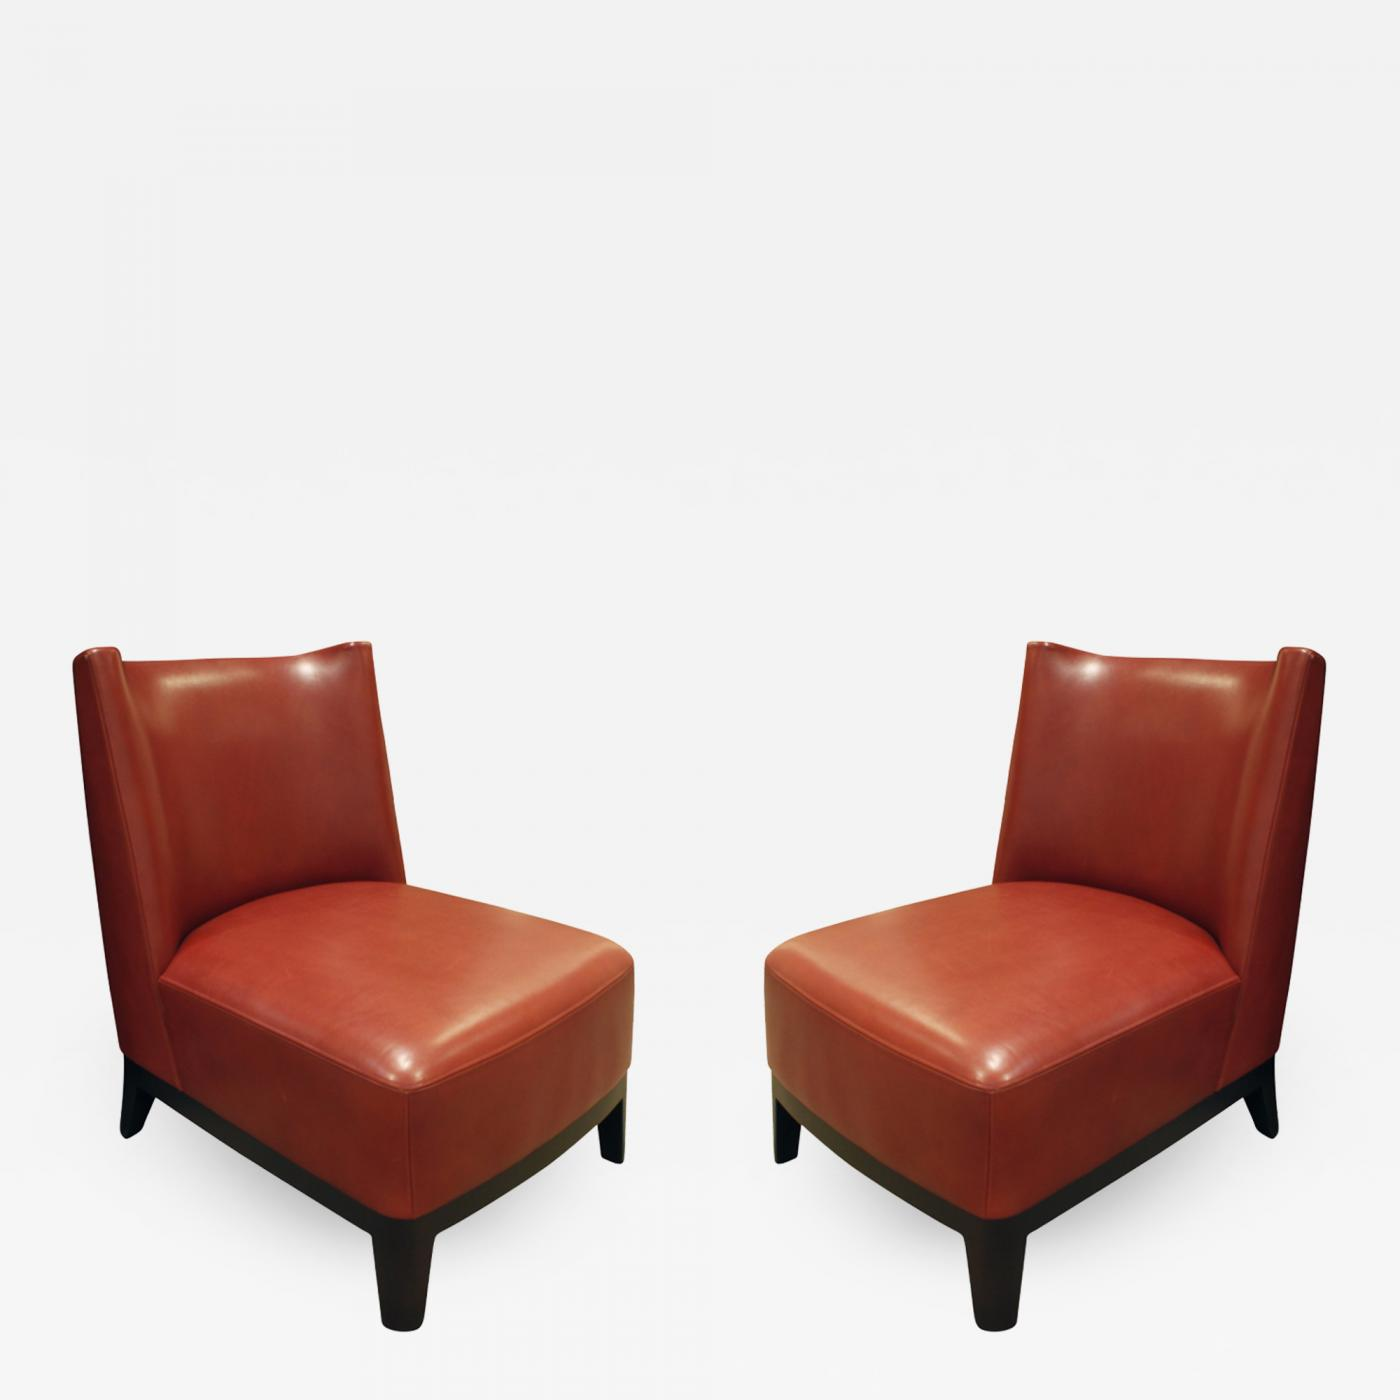 Christian liaigre pair of elegant red leather slipper chairs 2000s signed